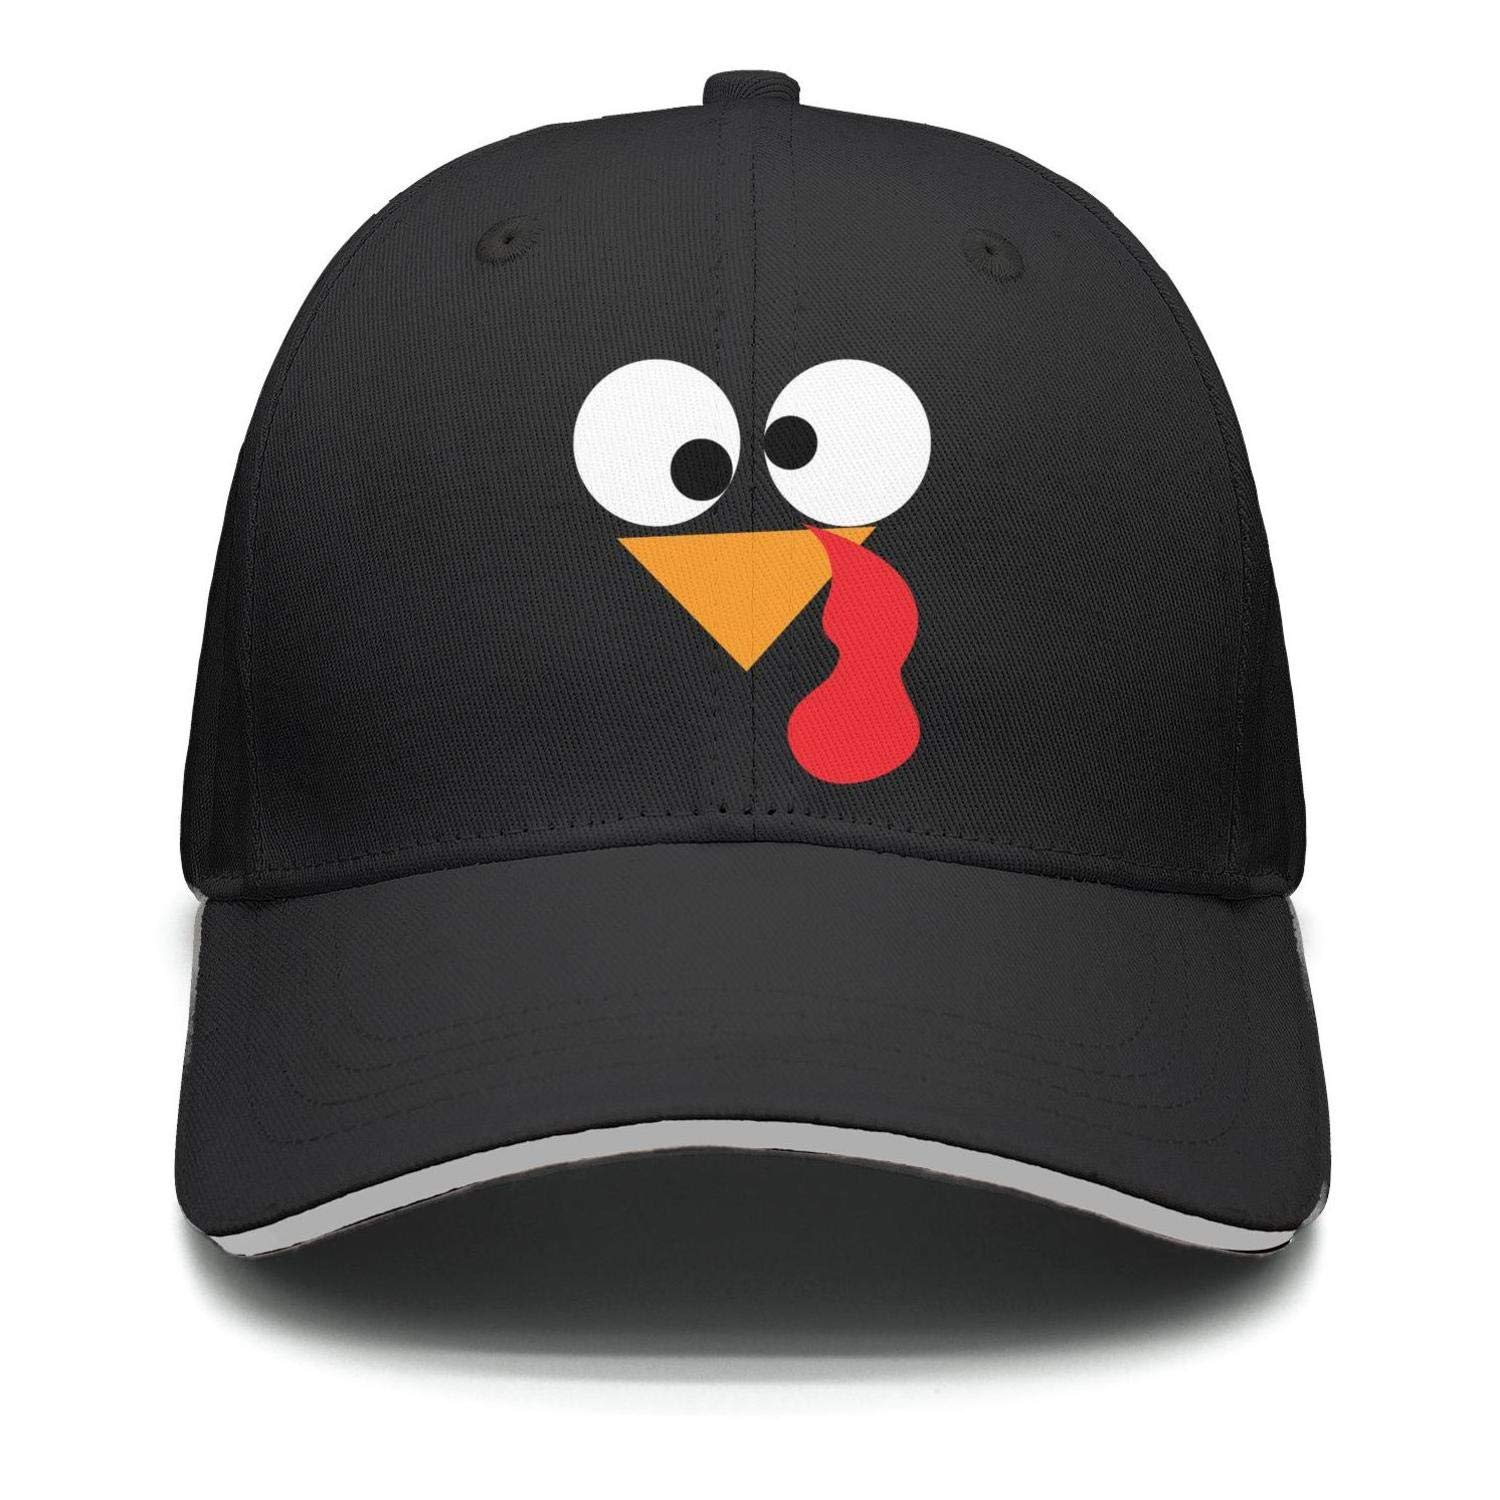 0307c1b650b Lskjohjds Men Women Happy Thanksgiving Day Turkey Face Casual Baseball Cap  Adjustable Sports Trucker hat at Amazon Men s Clothing store